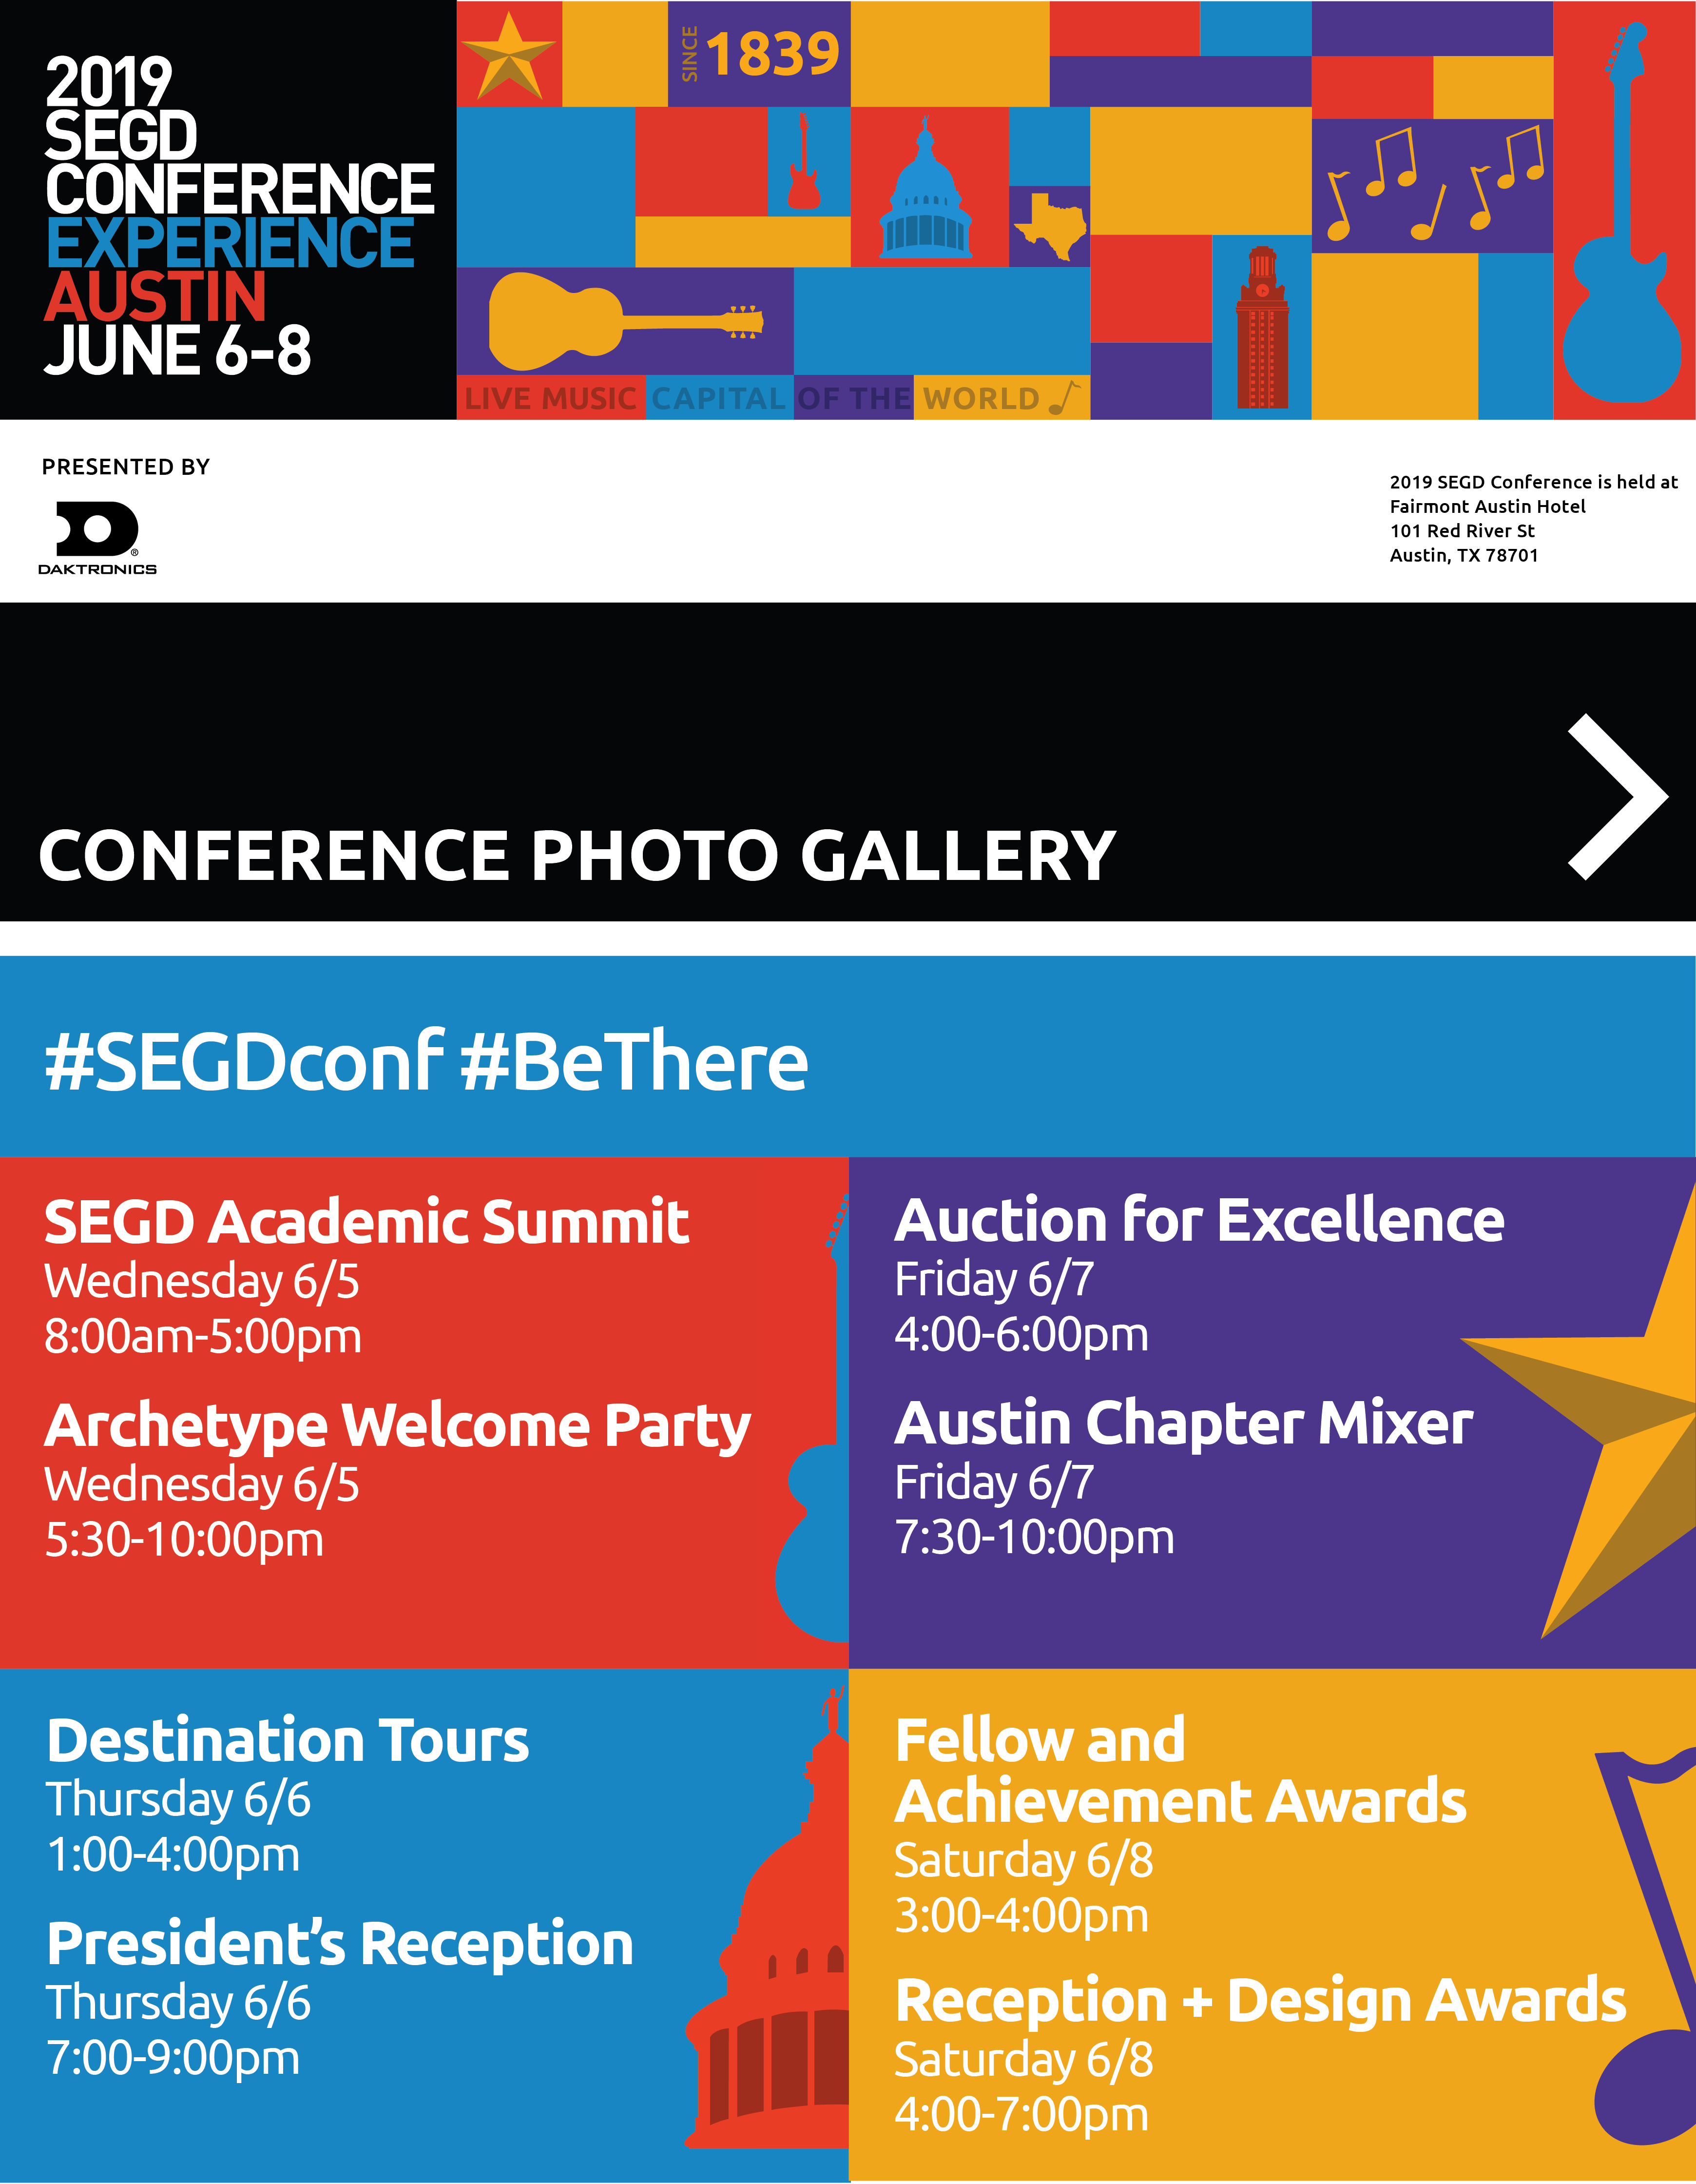 2019 Conference Experience in Austin, June 6 through 8